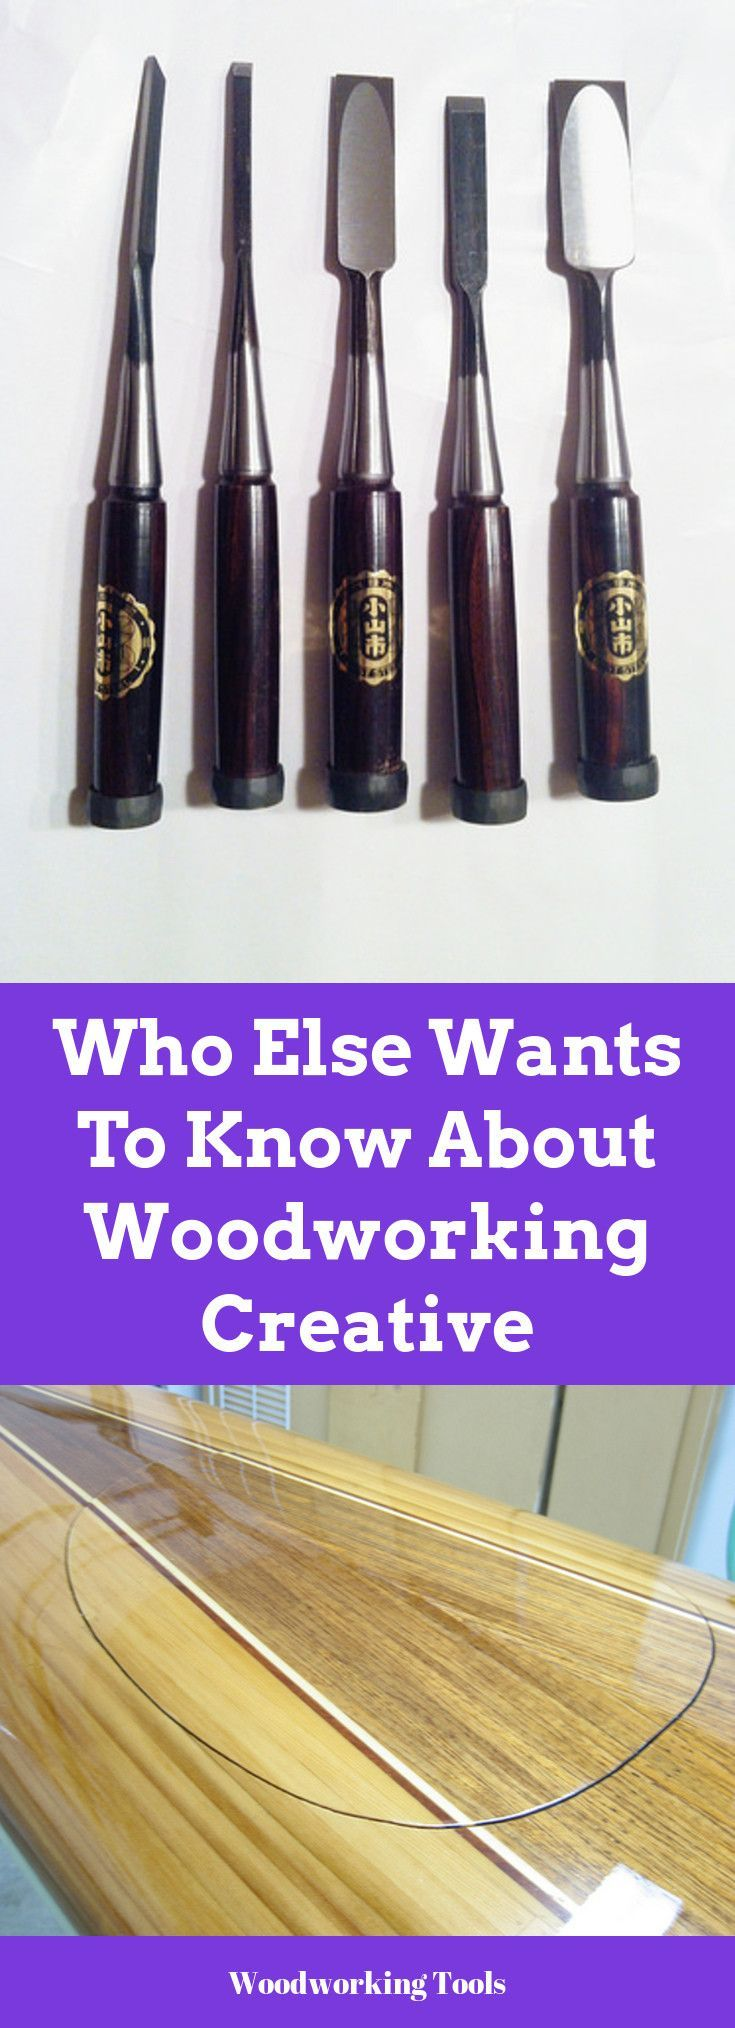 11+ Prodigious Wood Work Gifts Ideas